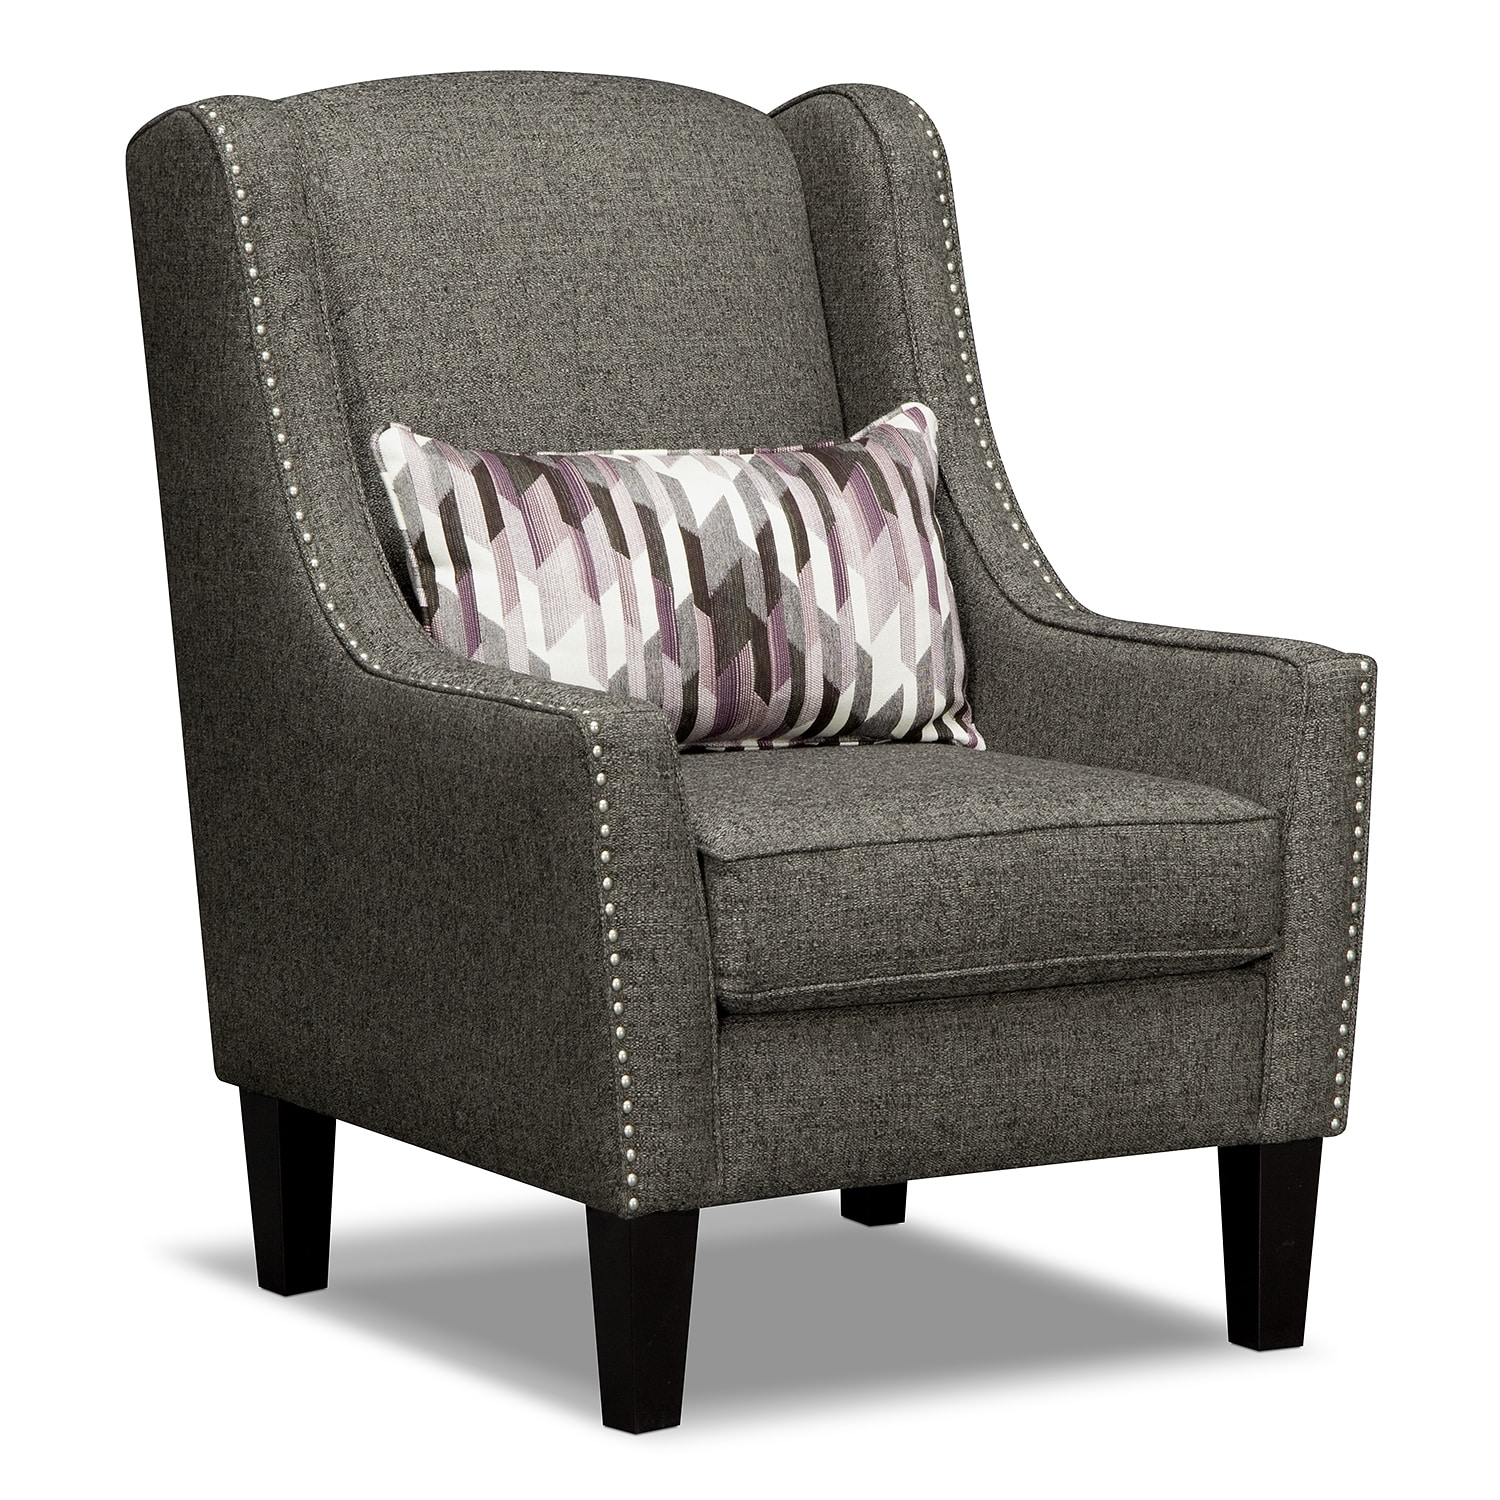 Furniture black queen bed likewise living room accent chair on